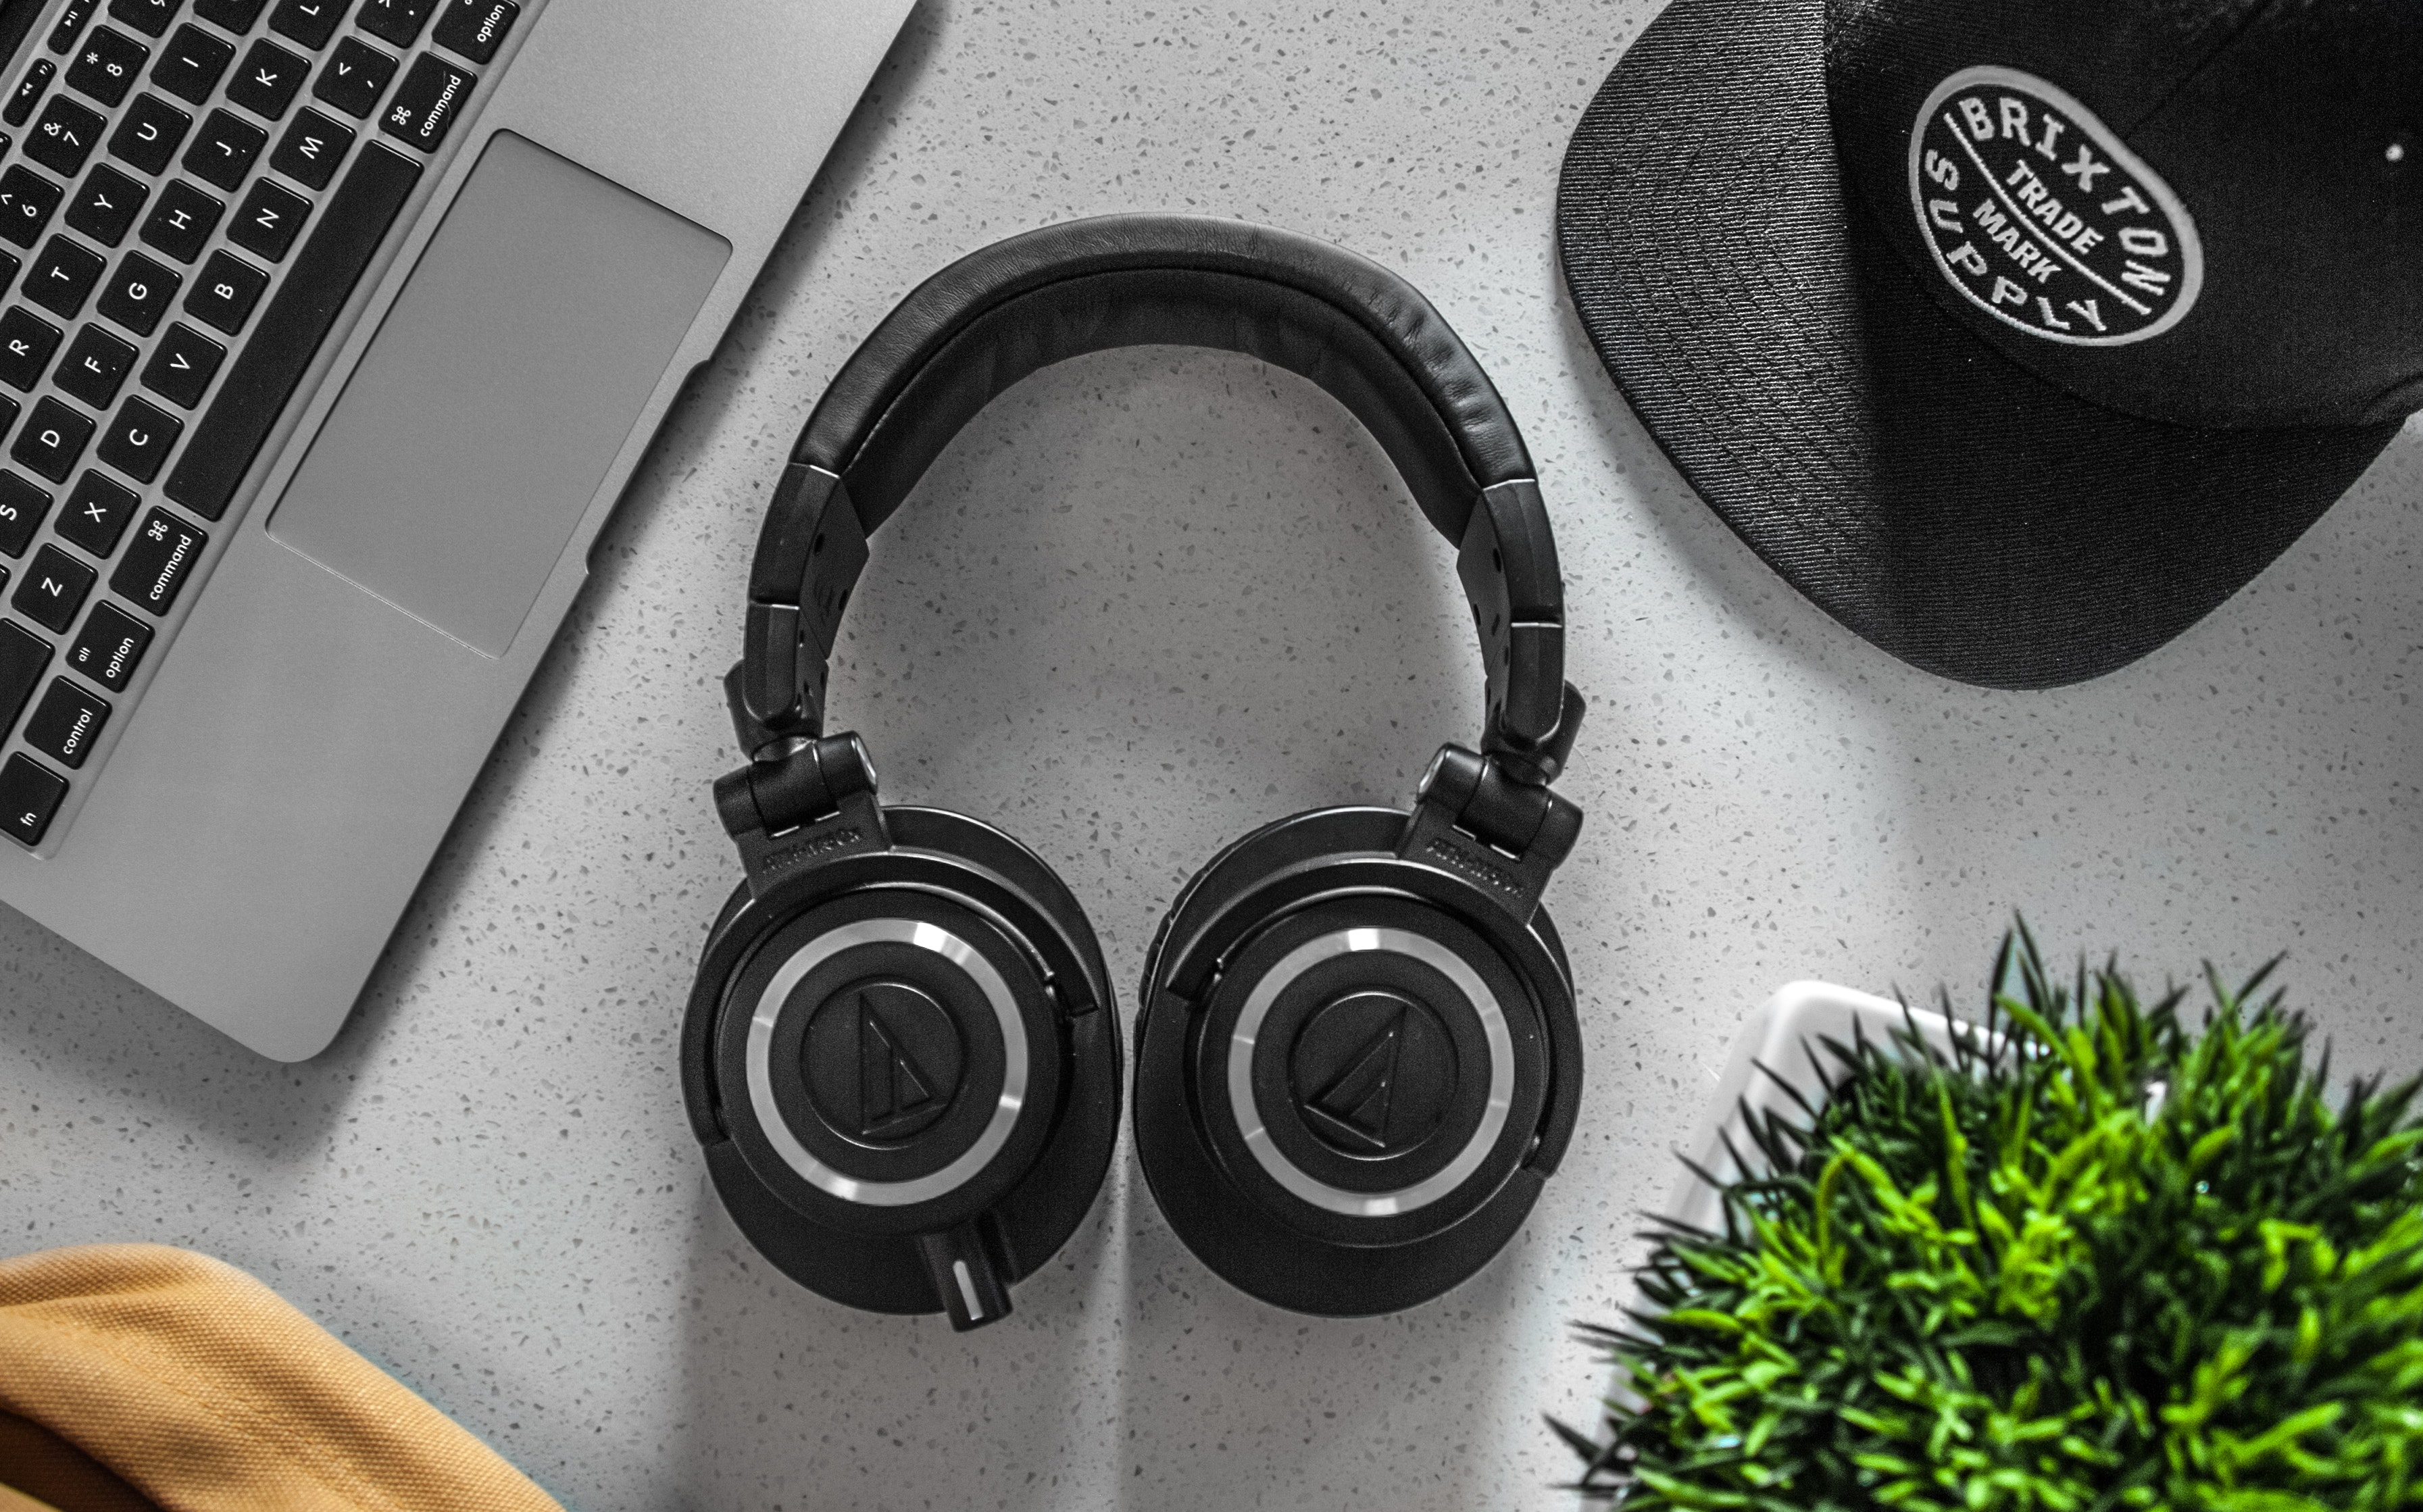 200+ Amazing Headphones Photos · Pexels · Free Stock Photos